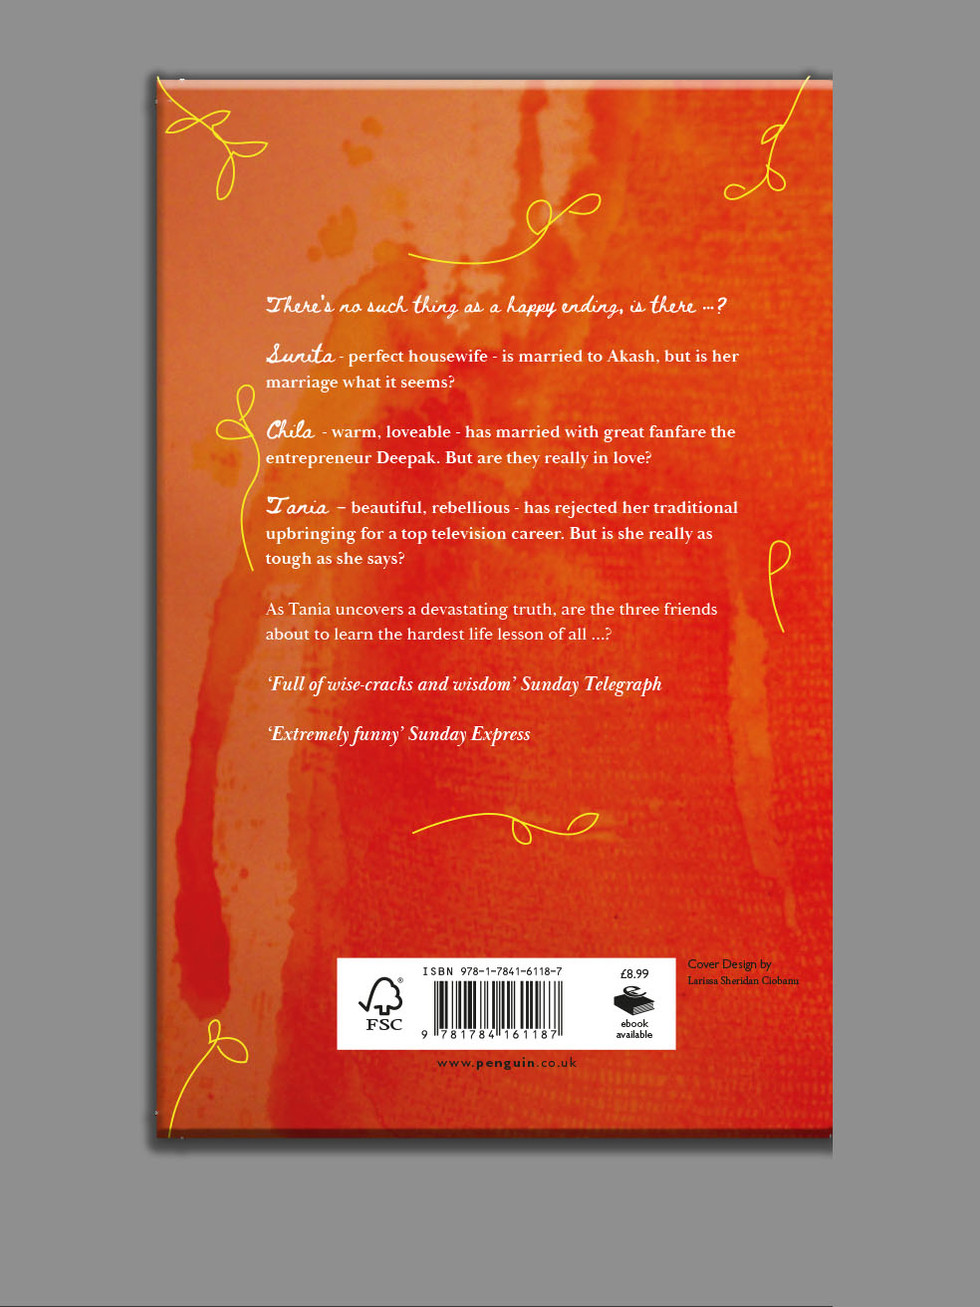 Back of book cover